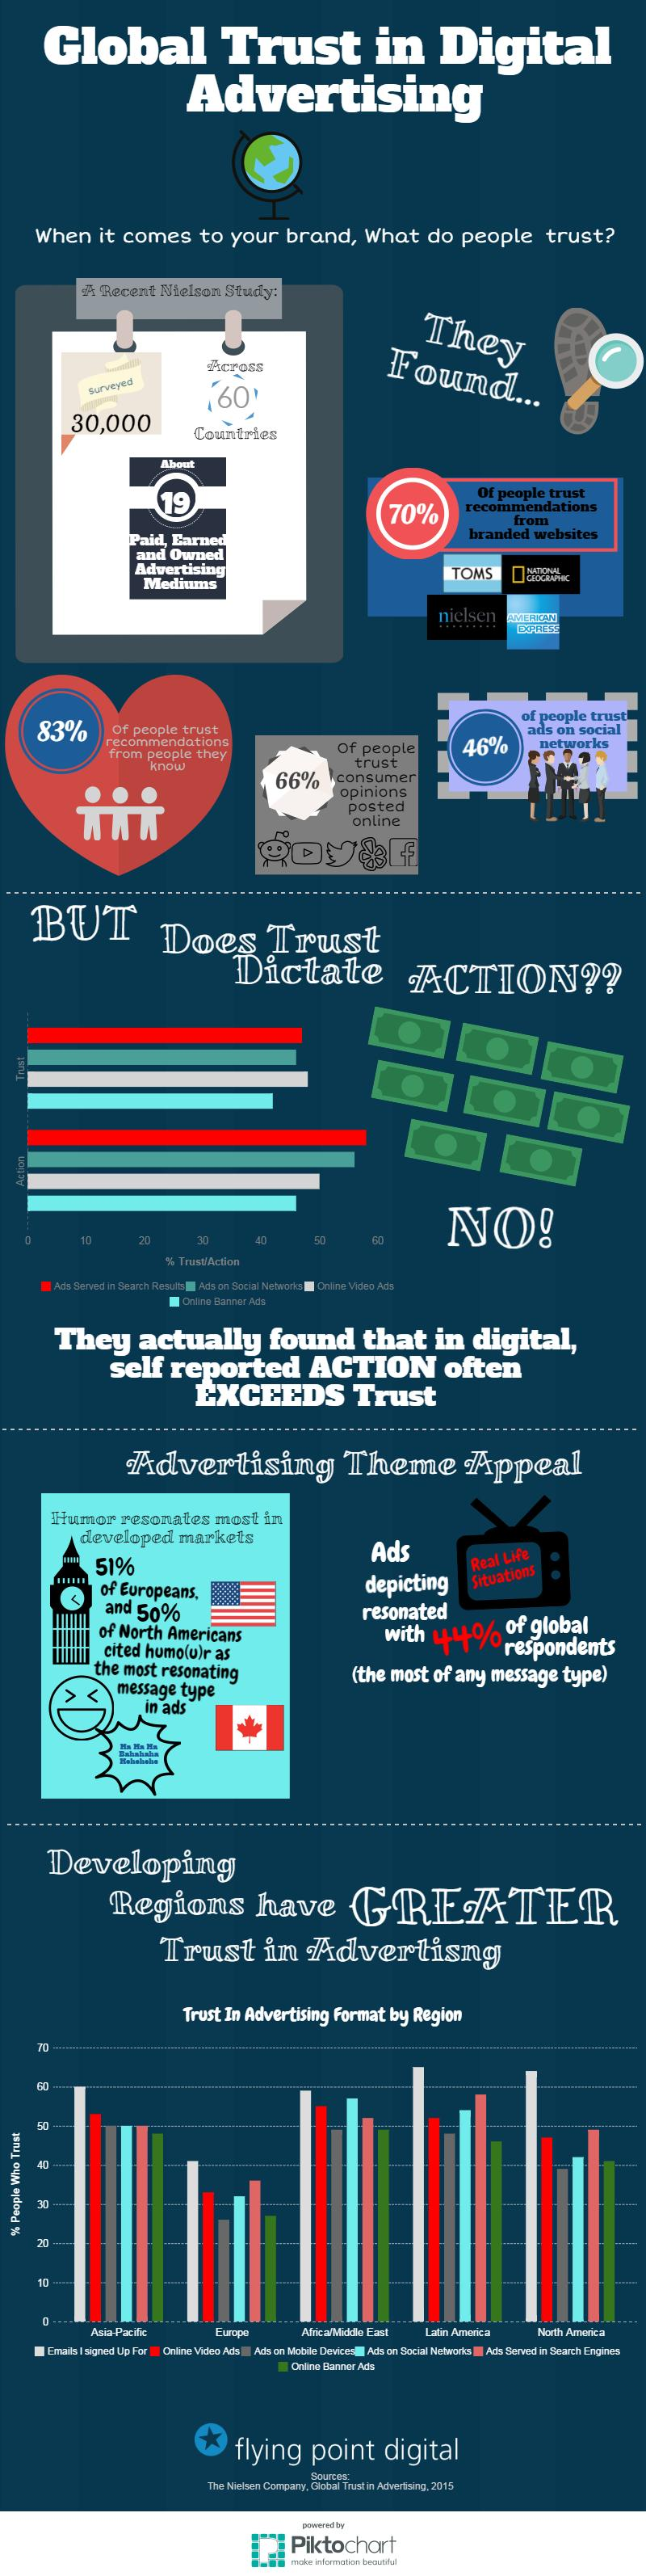 2015 Global Trust in Digital Advertising Trends infographic